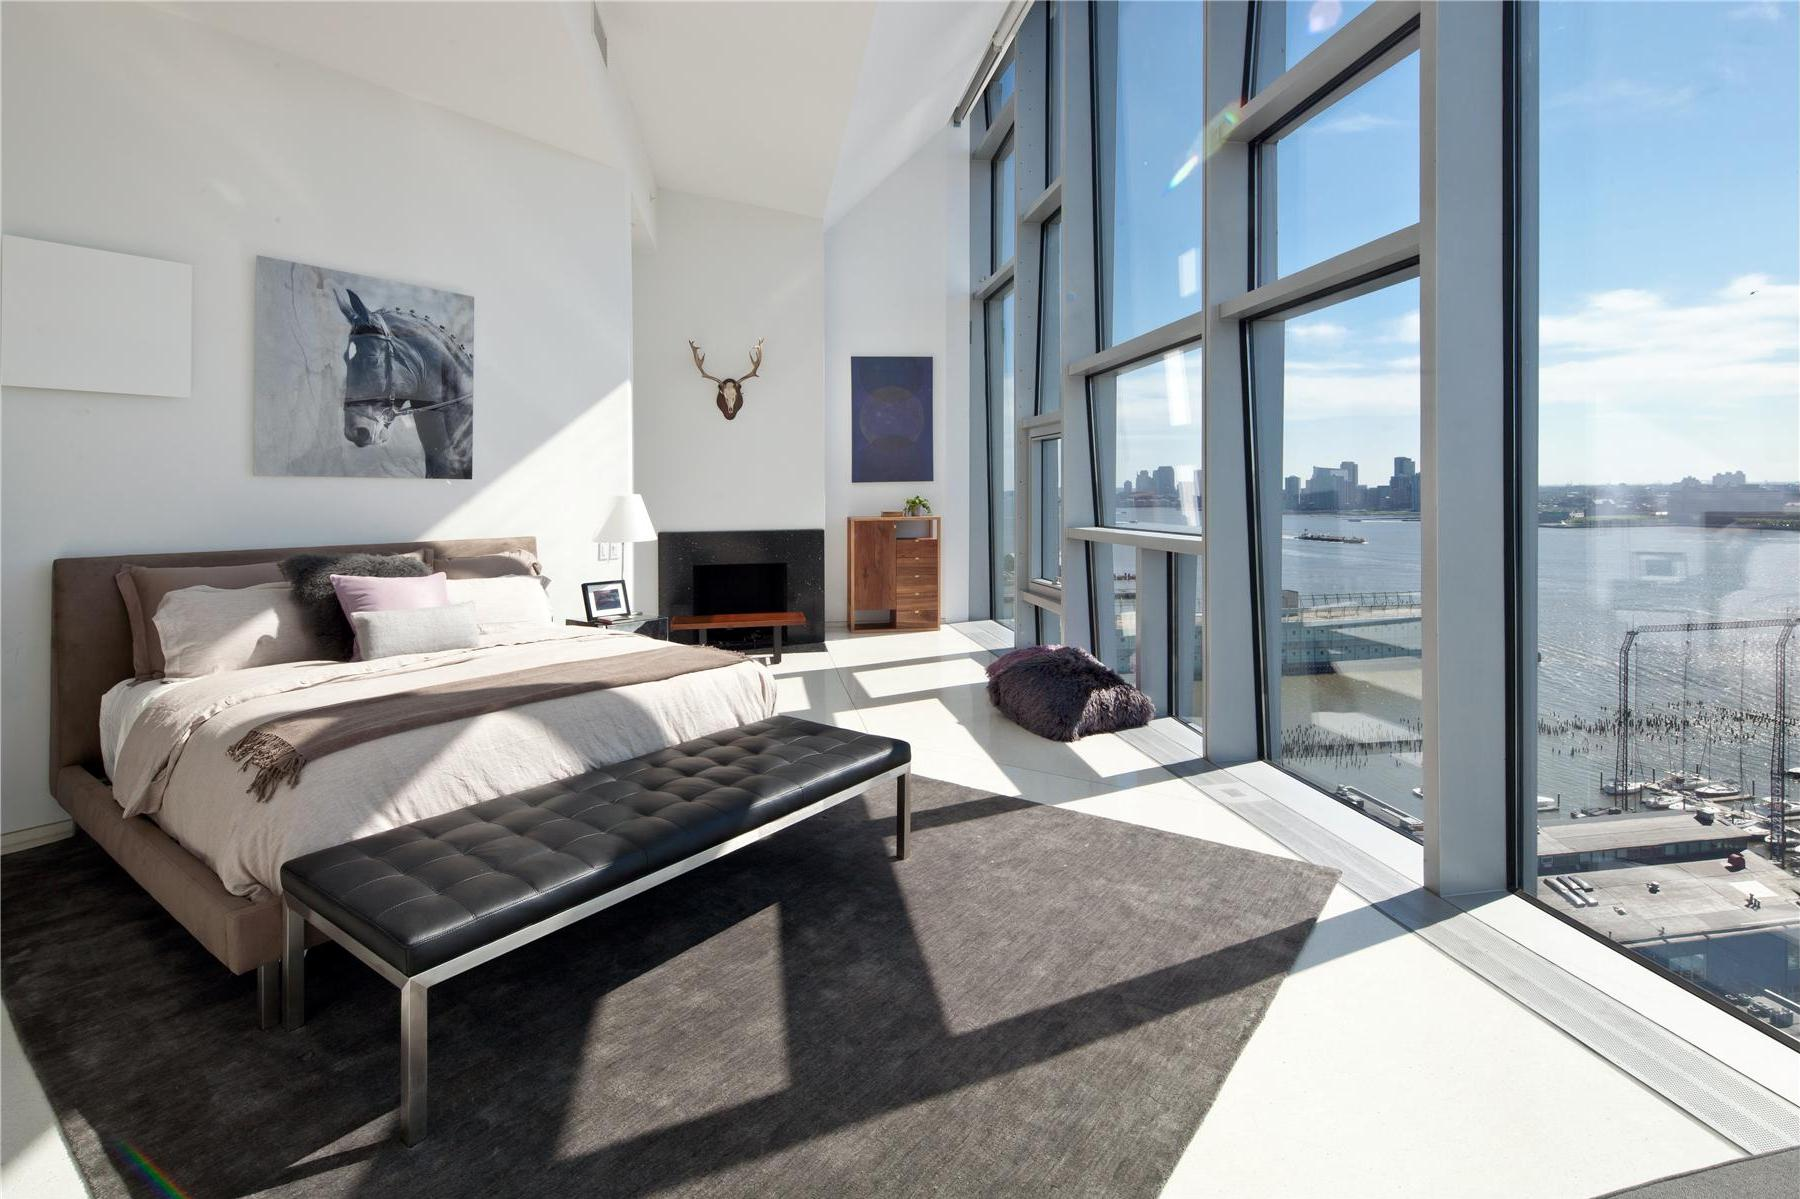 Luxury-100-Eleneth-Avenue-Penthouse-in-Manhattan-11